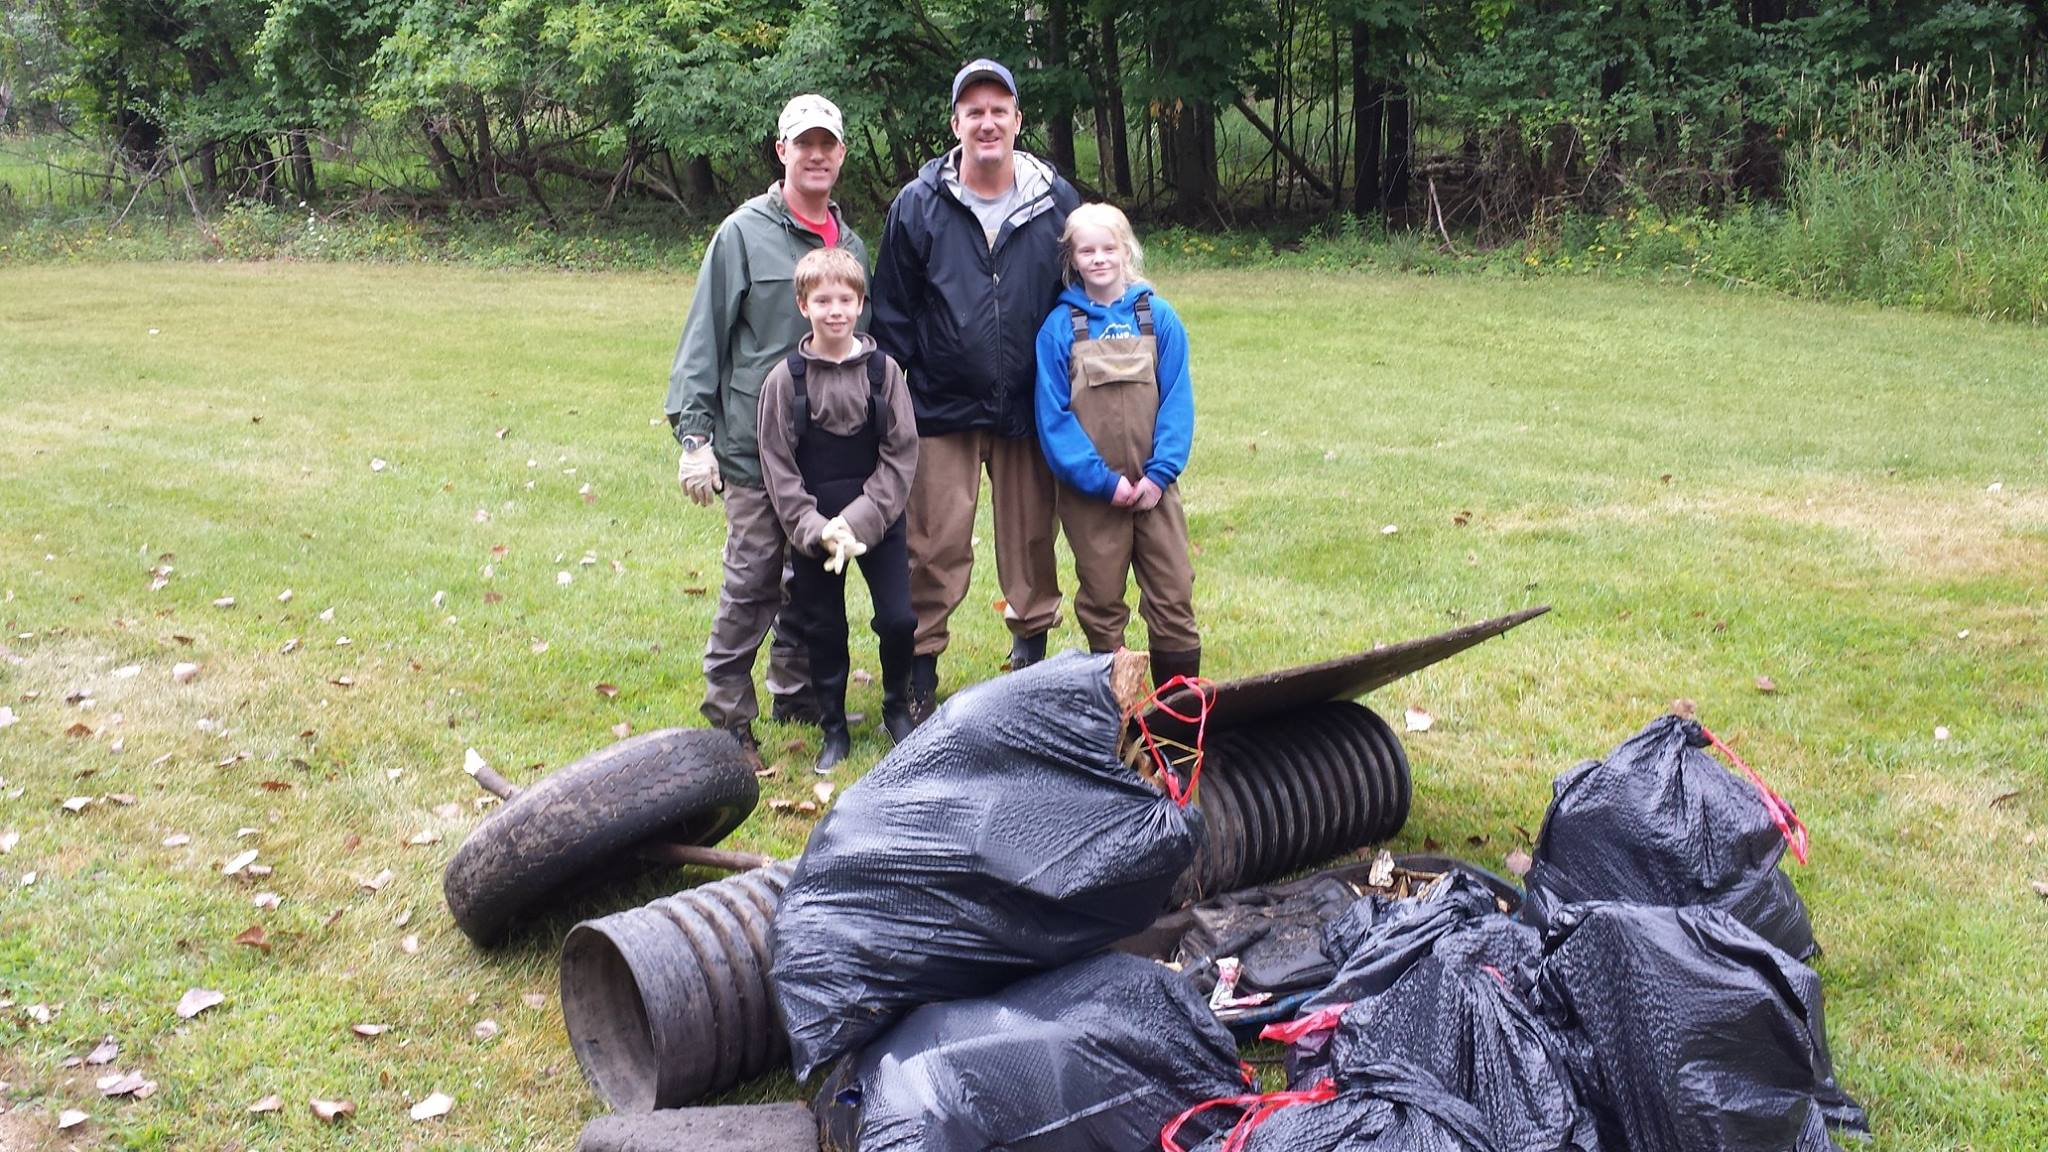 Buck Creek clean-up on August 12